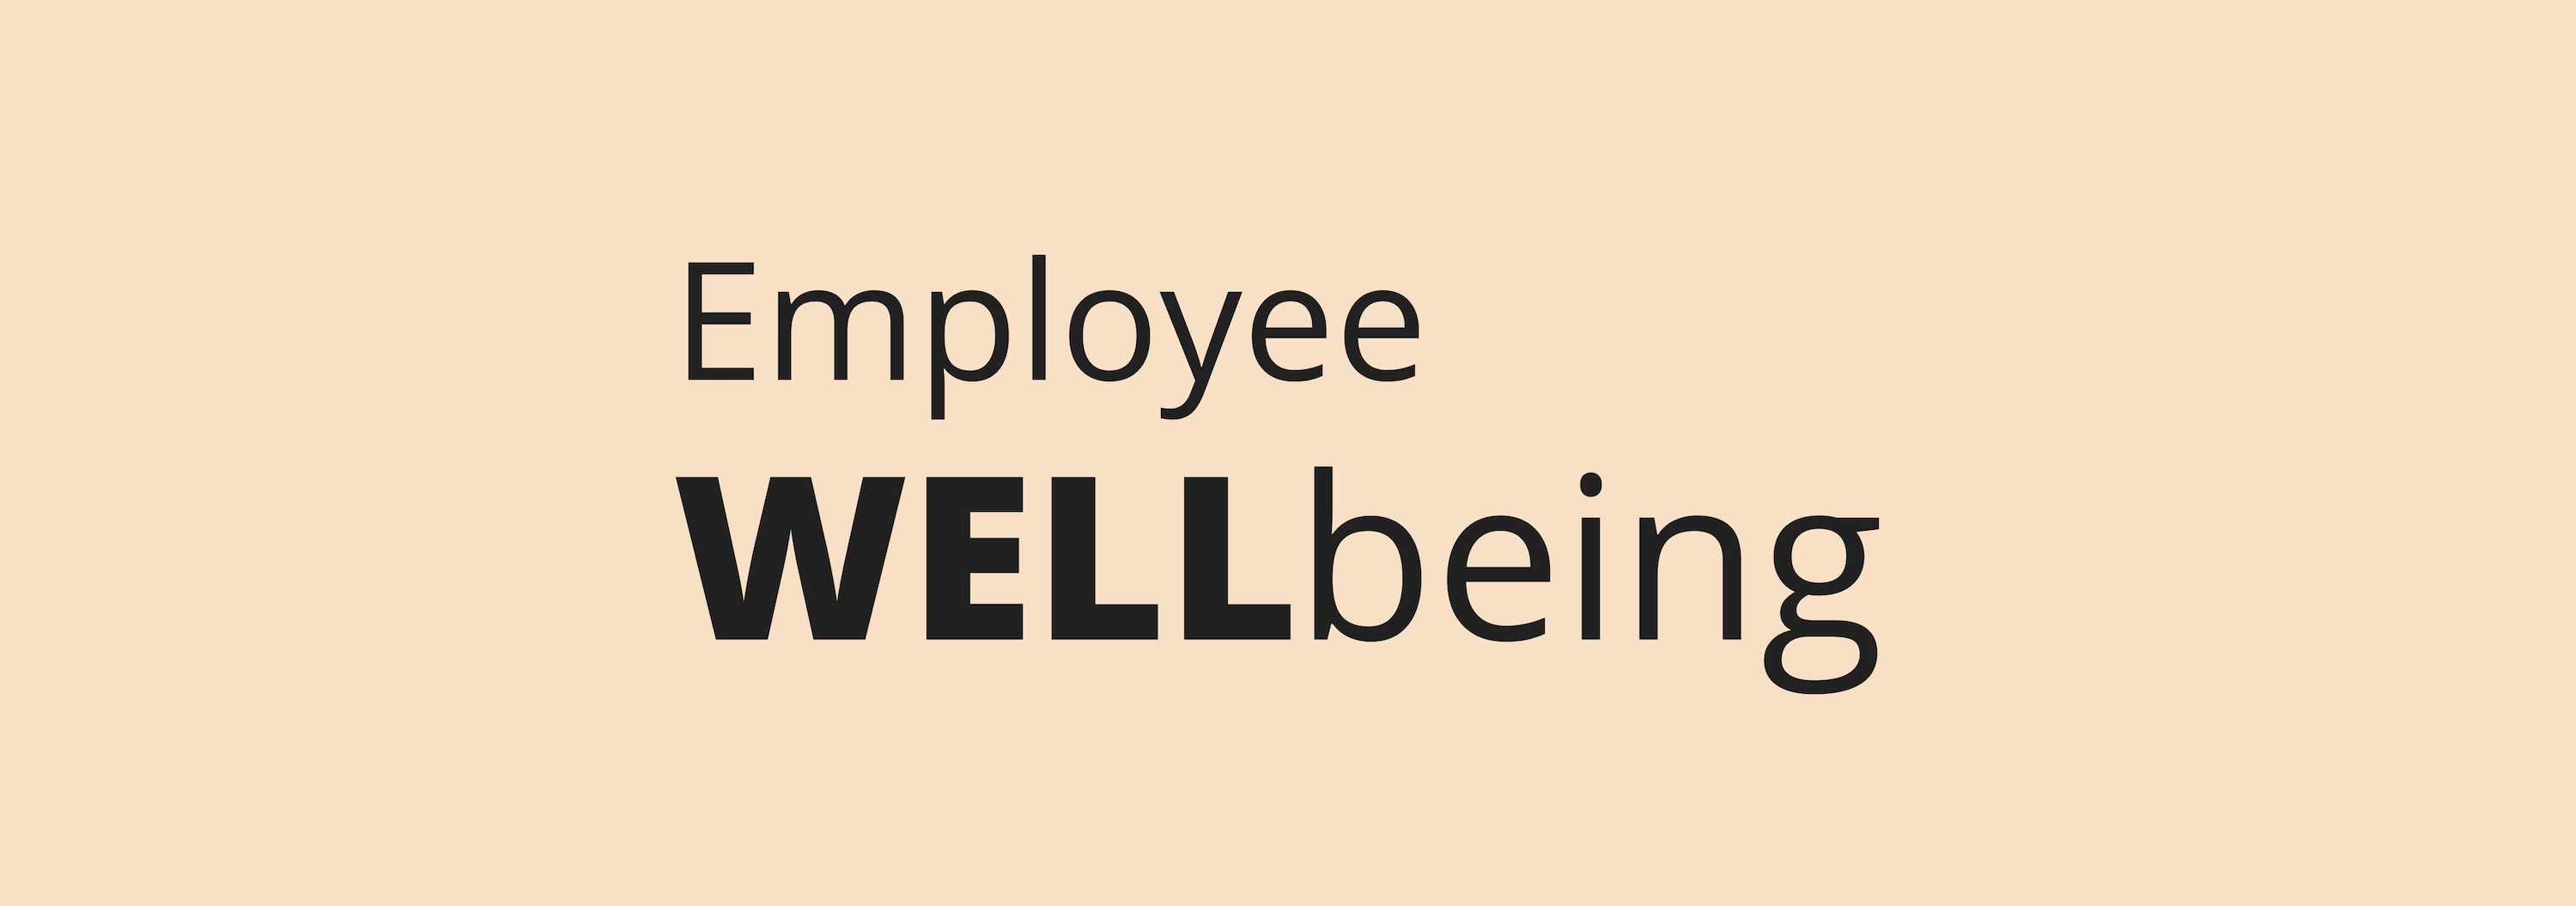 Top 5 HR Trends _Employee Wellbeing